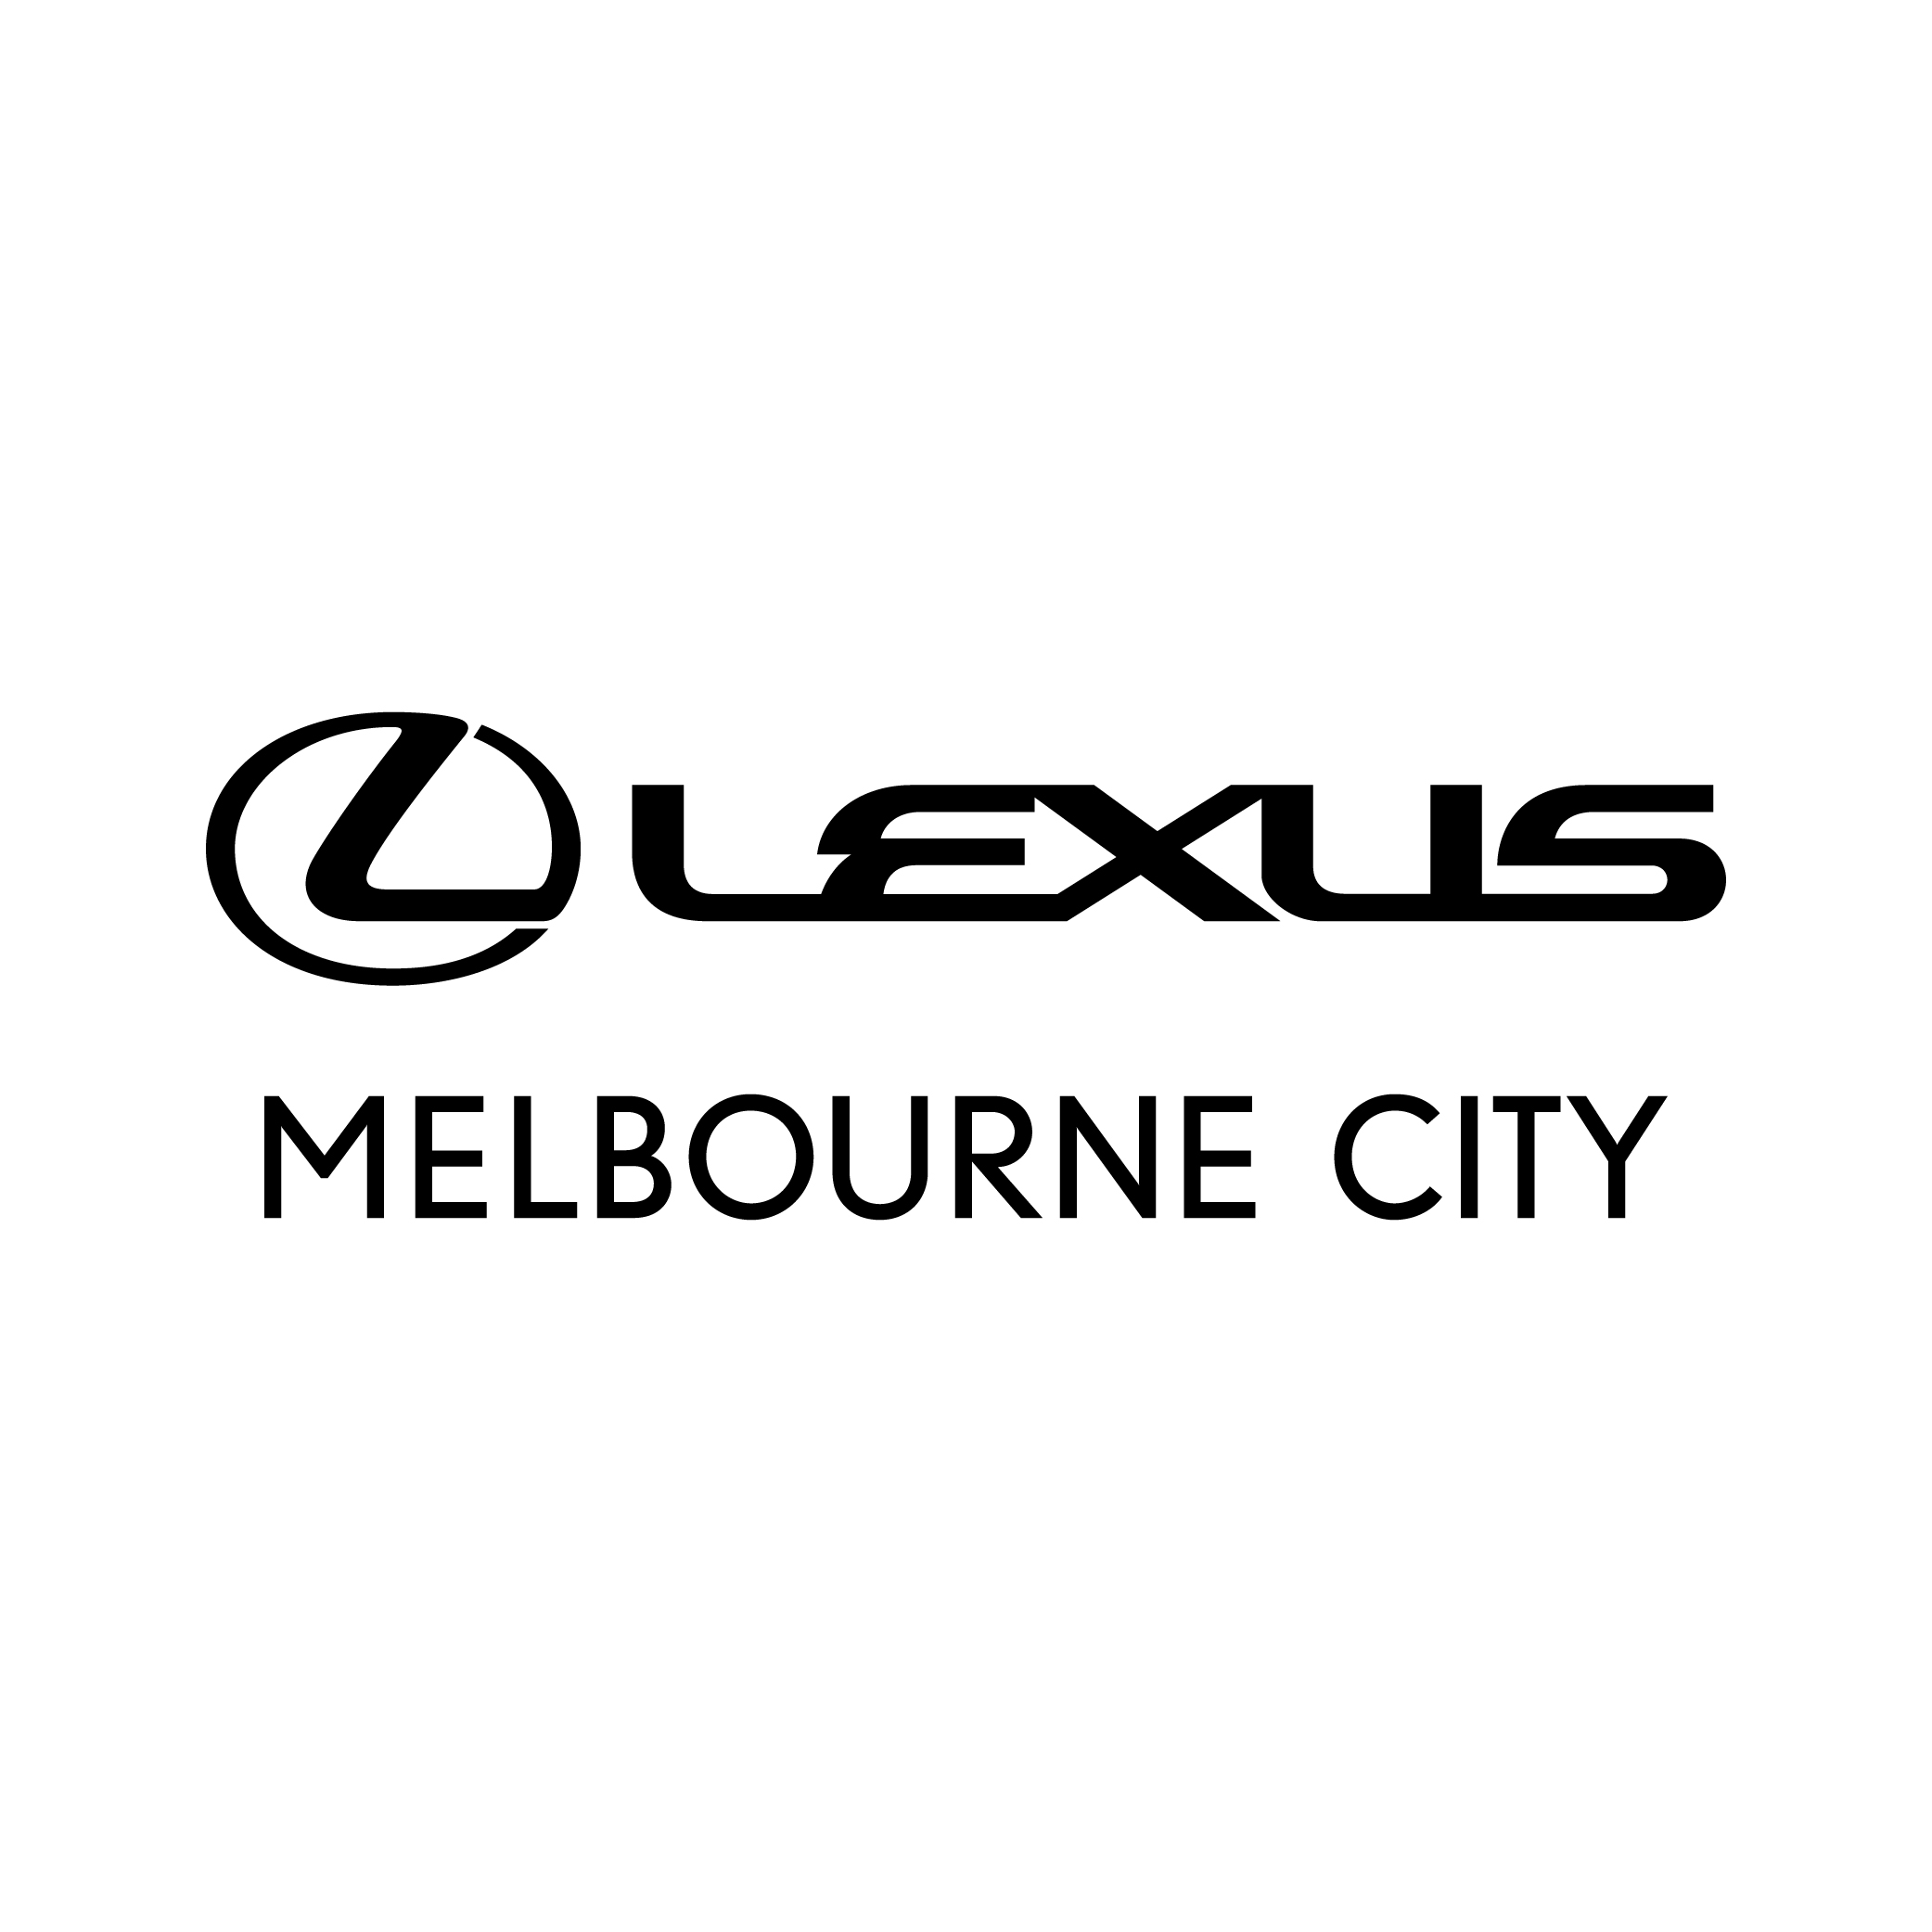 LEXUS Melbourne City